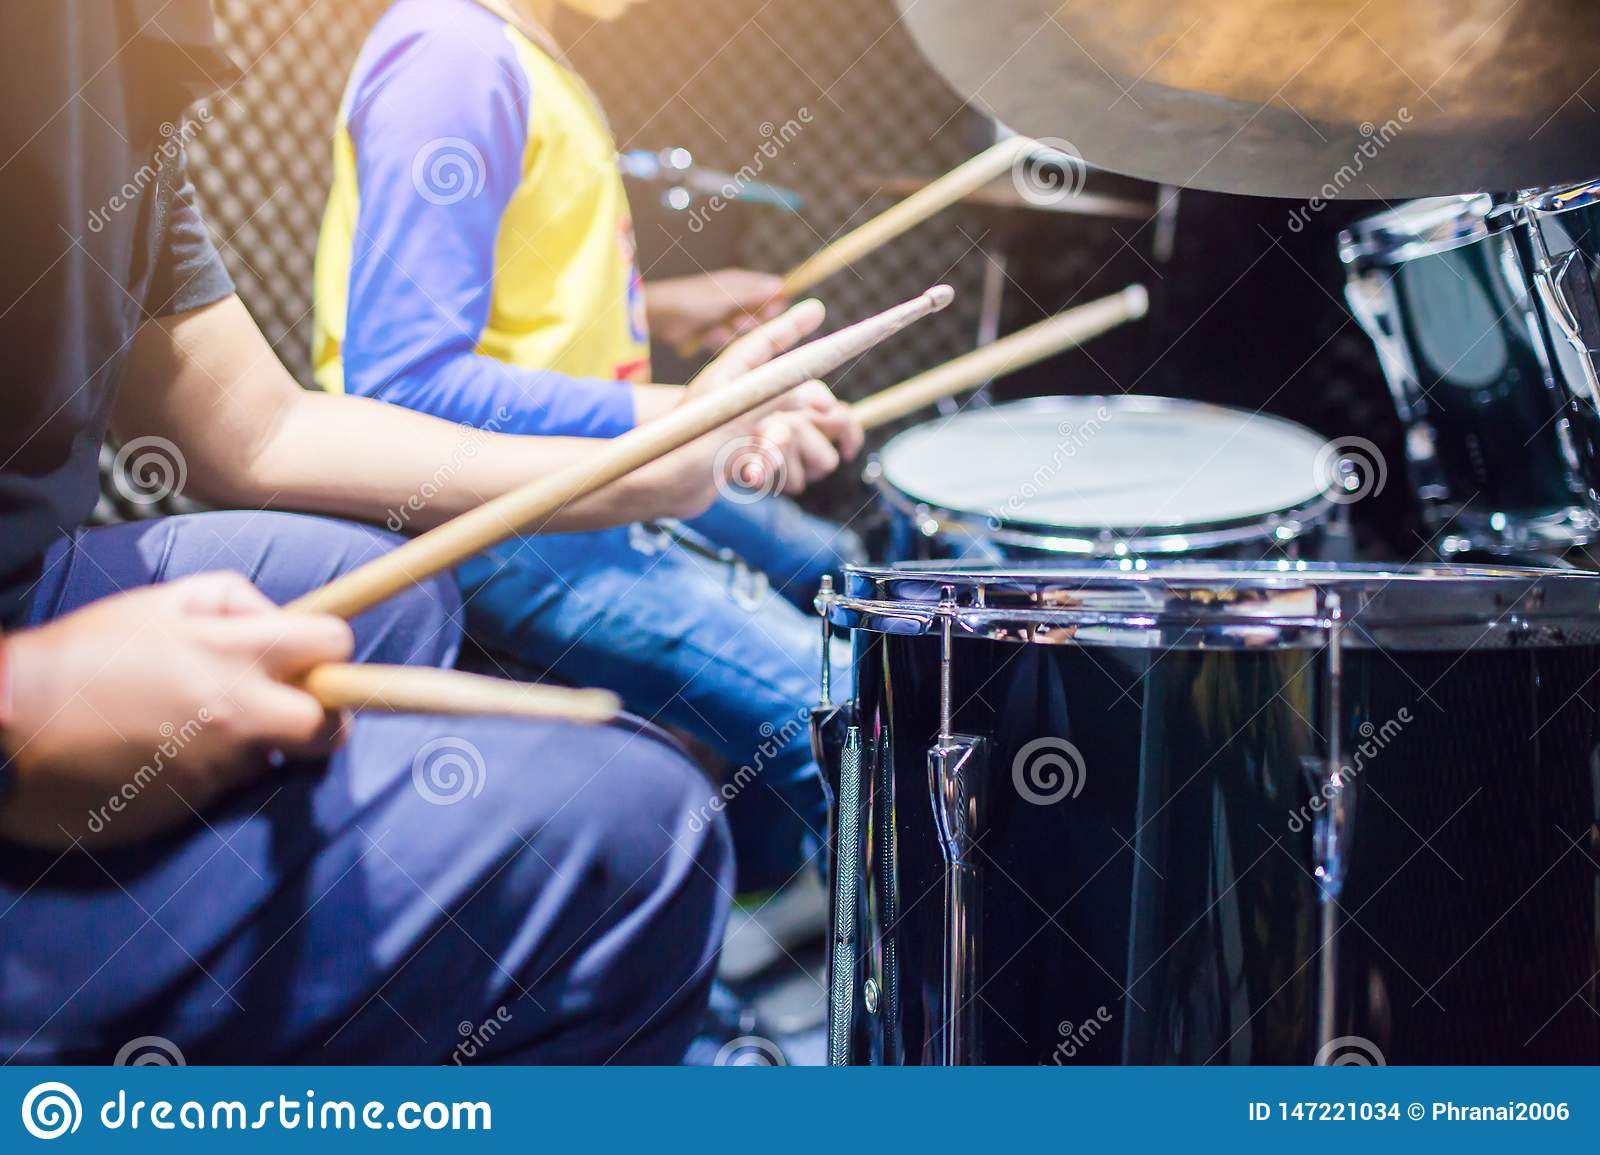 Hands Of Teacher With Wooden Drumsticks Guiding Boy In Drum Learning